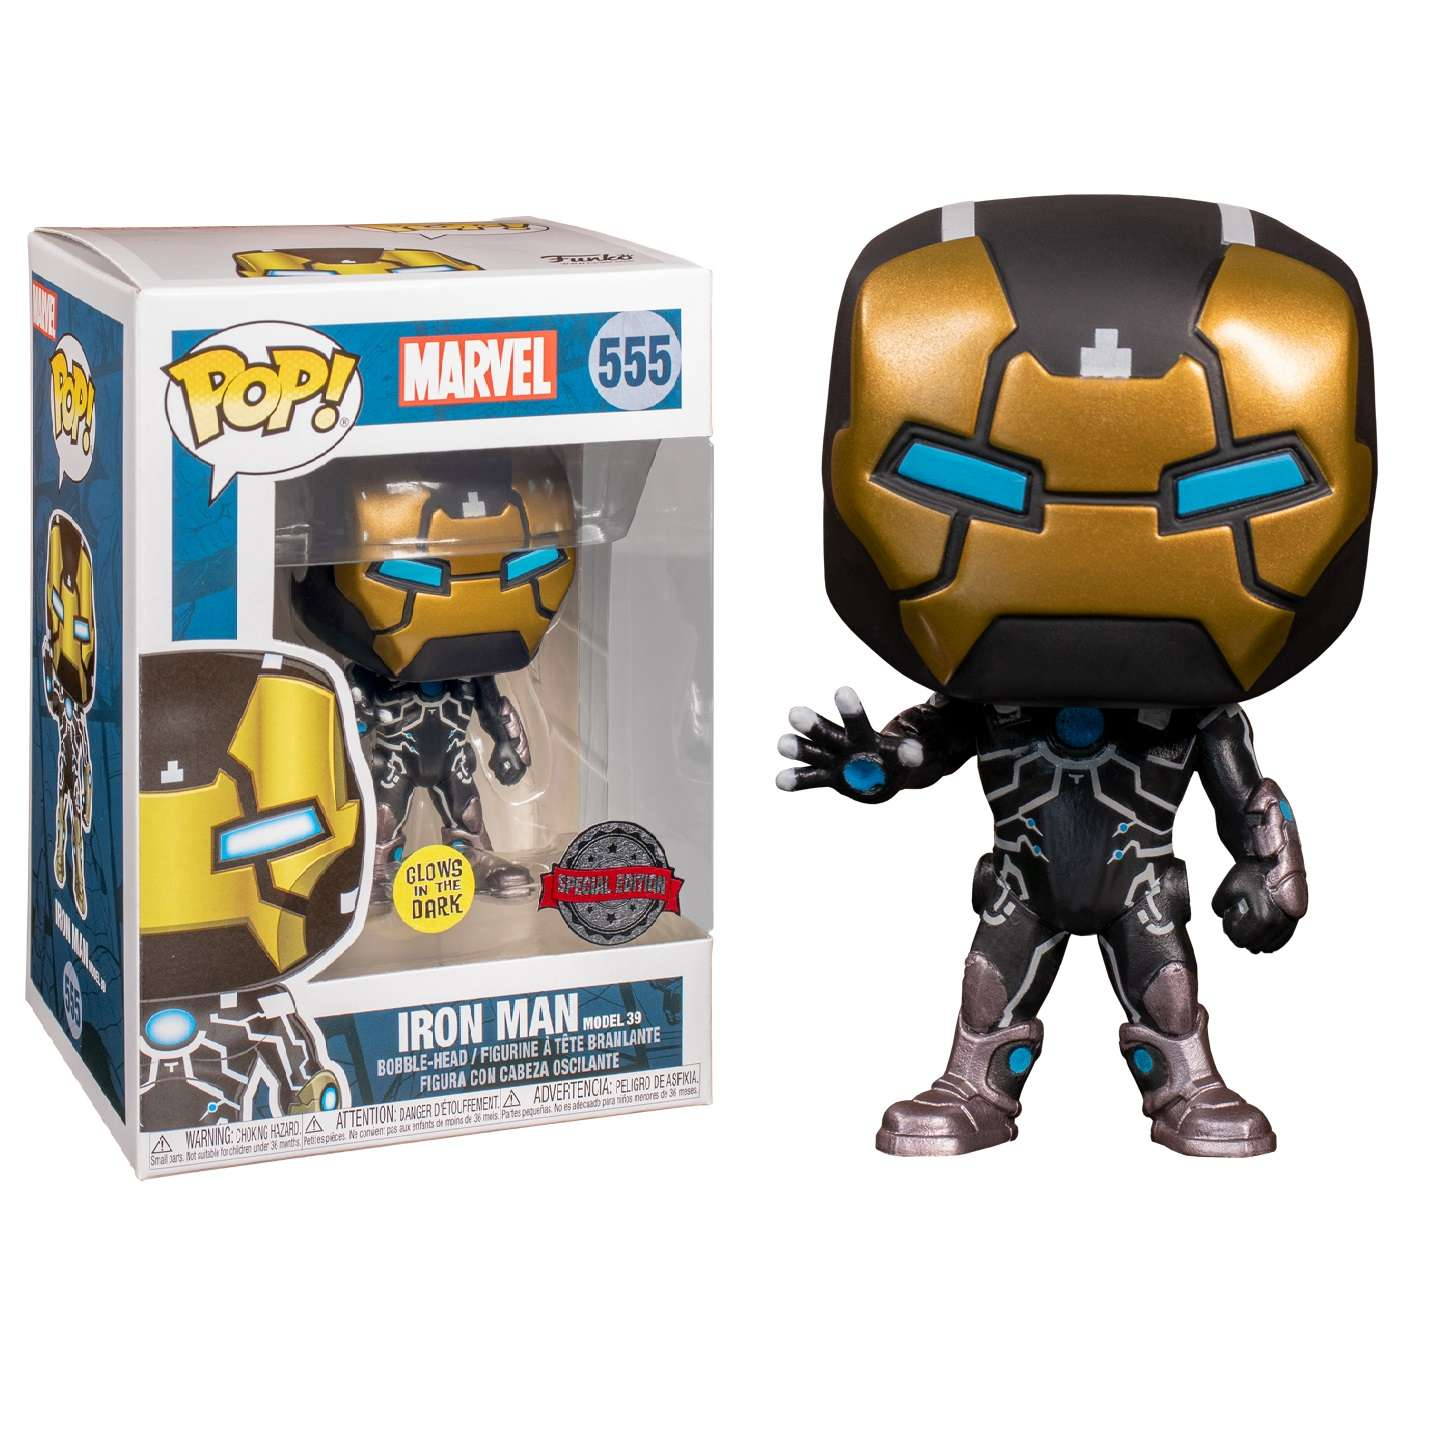 POP!: Marvel - Iron Man MK39 Glow in the Dark (Exclusive) Photo